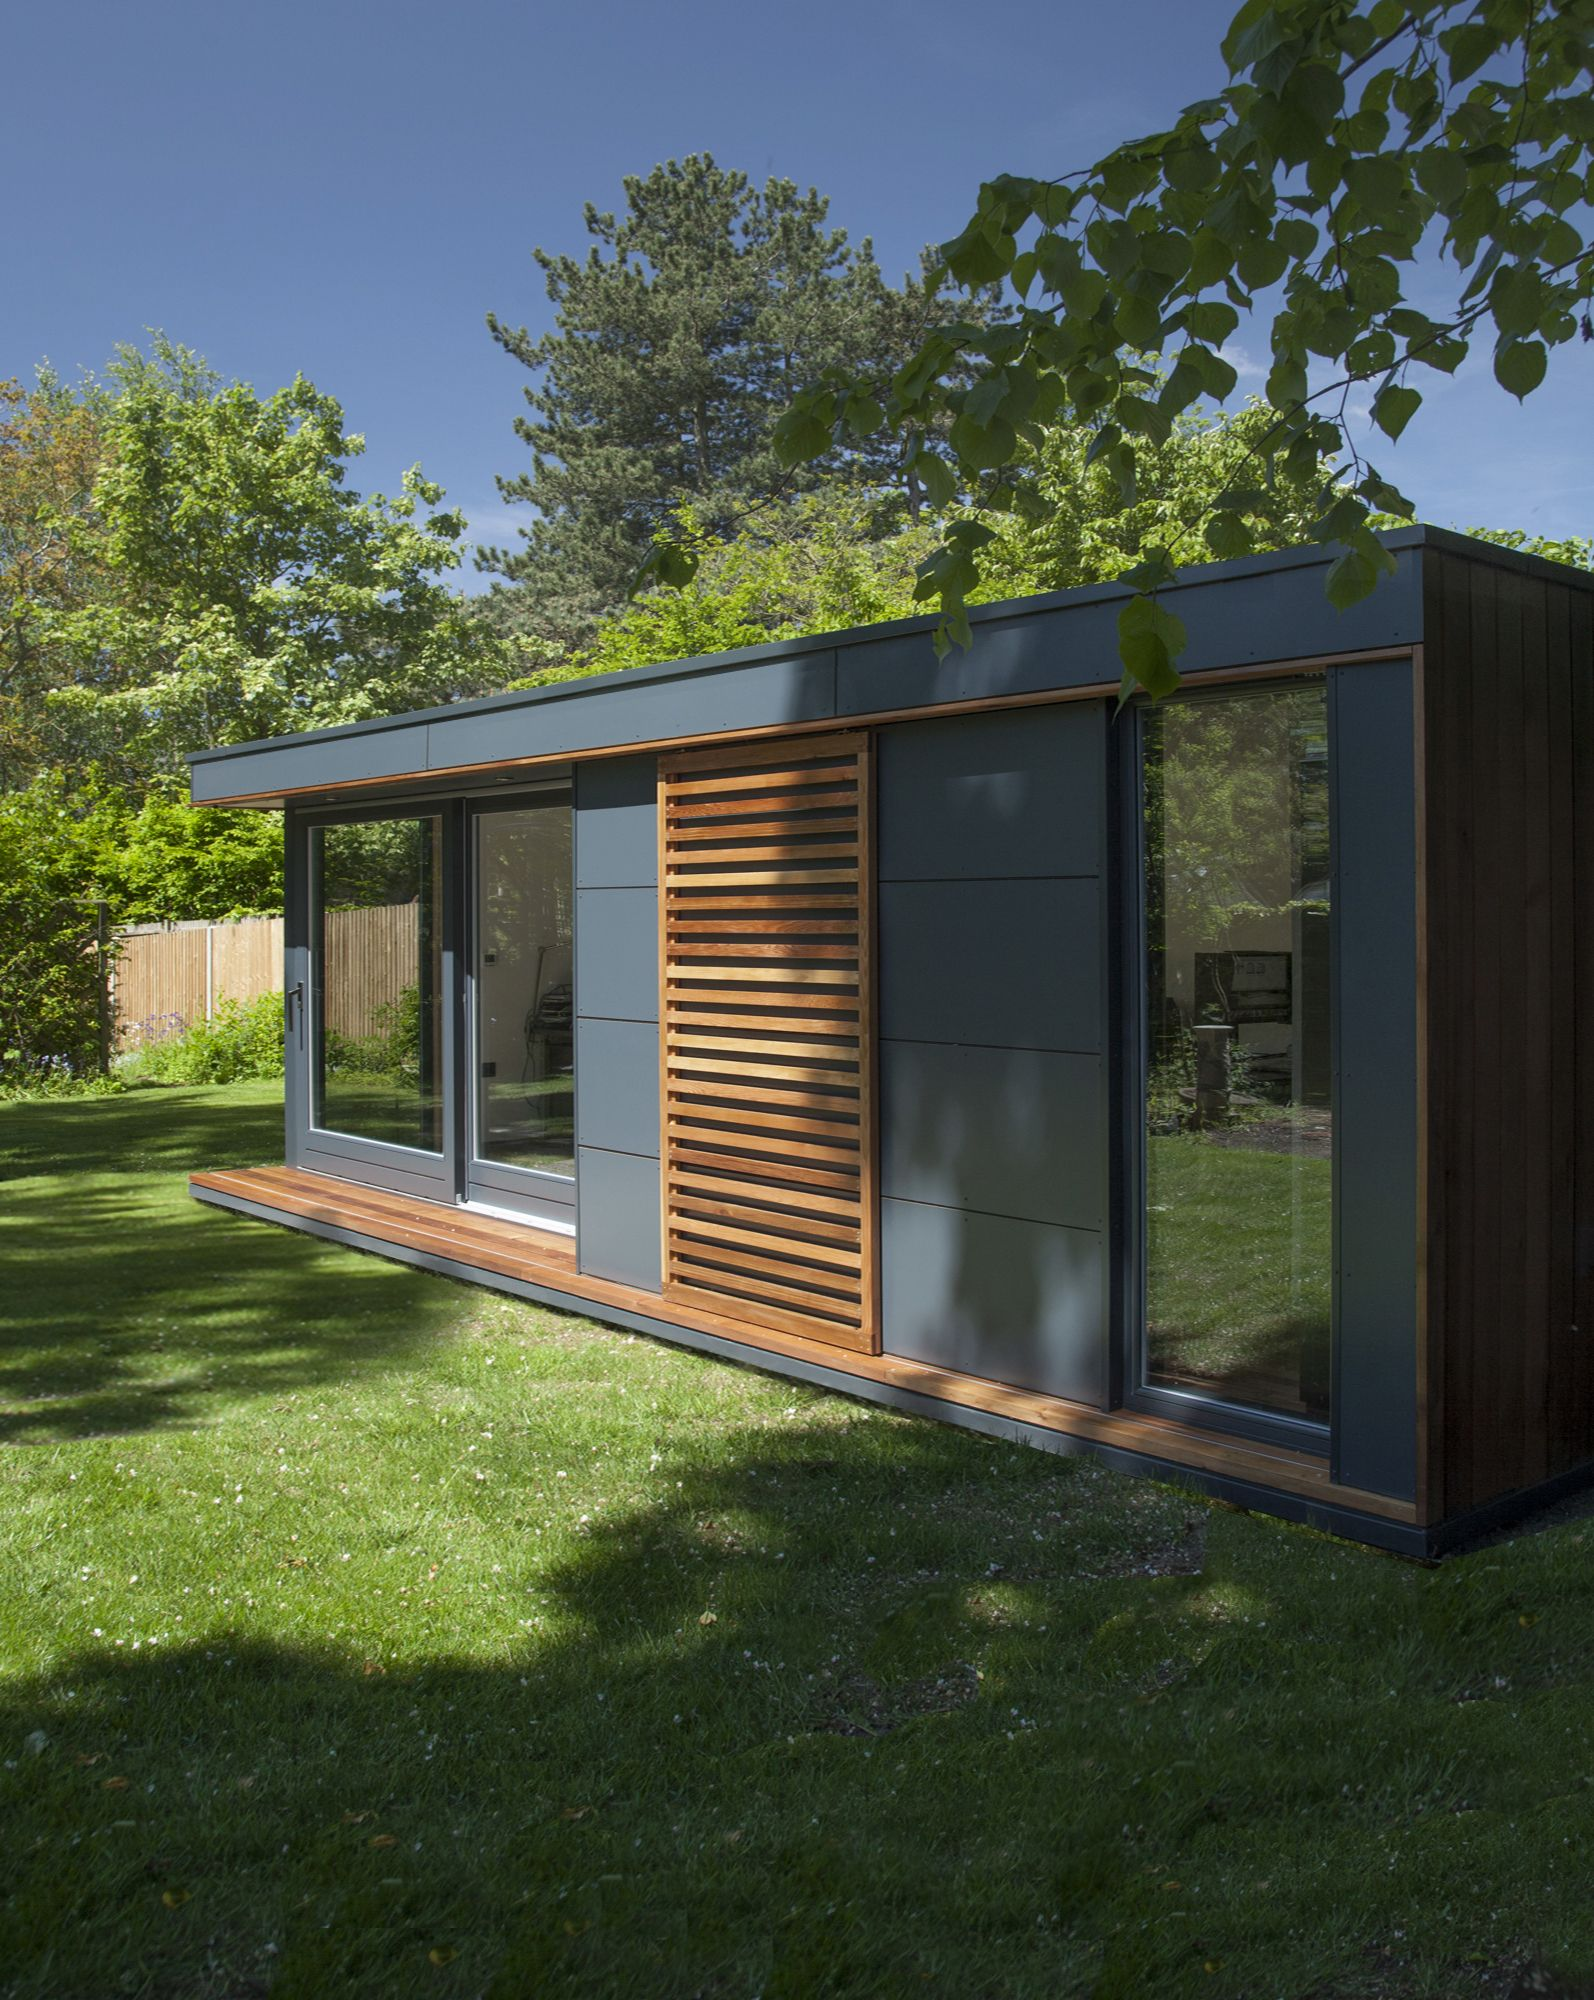 Interview Exciting Eco Friendly Contemporary Garden Rooms By The English Designer Ben Lord